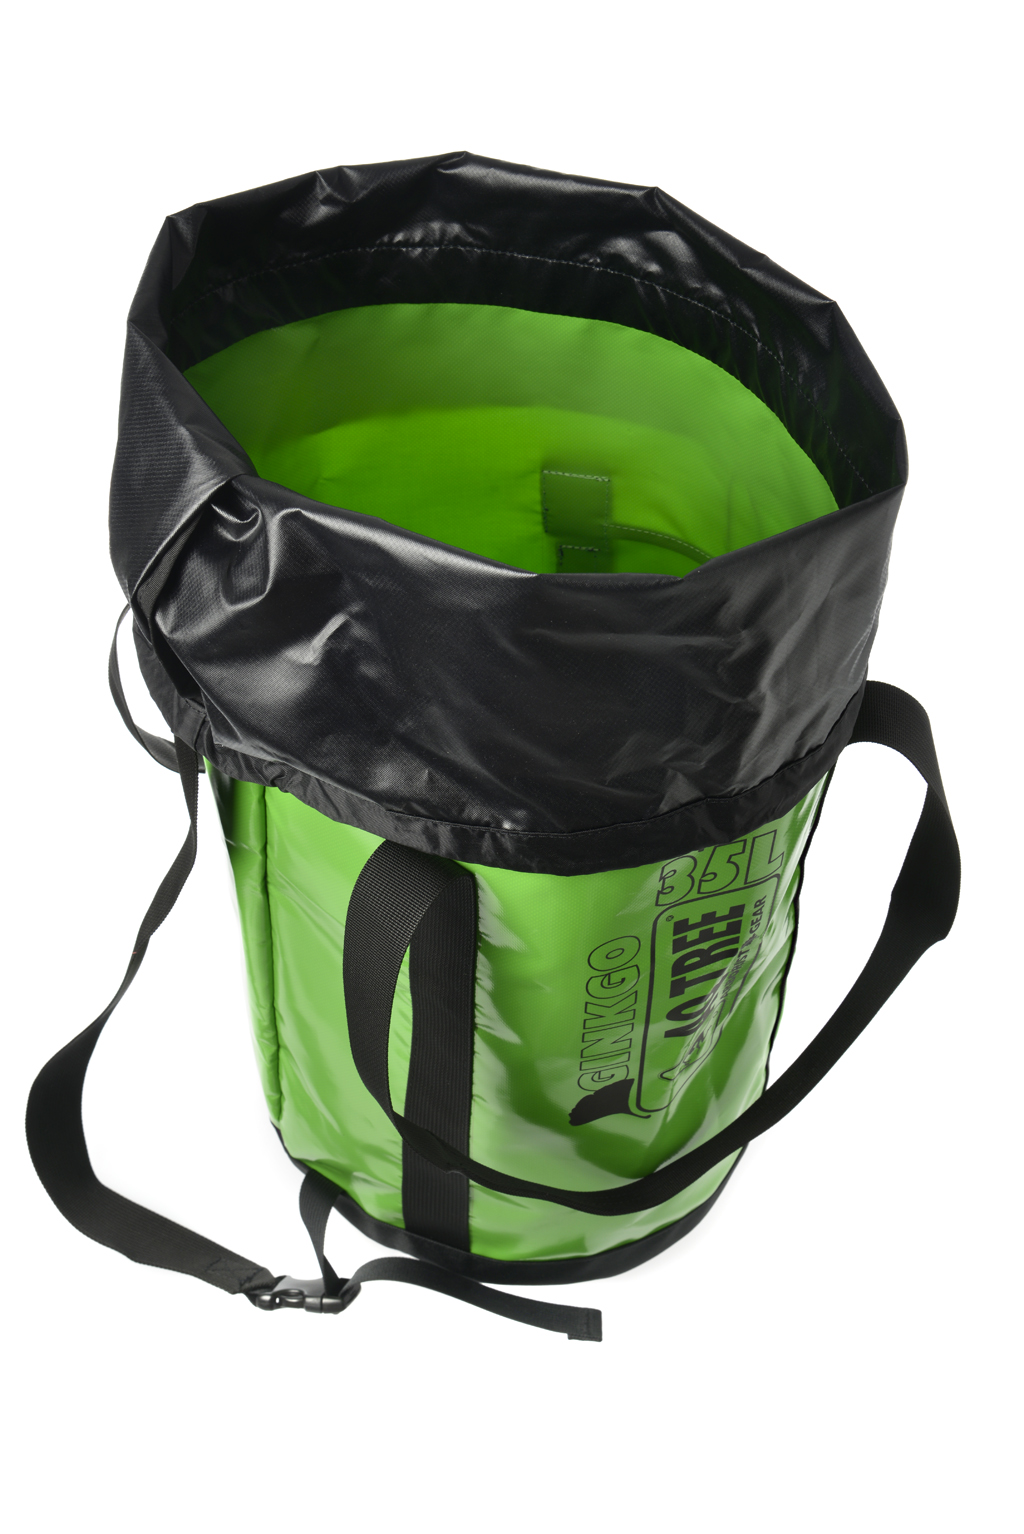 AQ TREE GINKGO ROPE BUCKET BAG 35LT